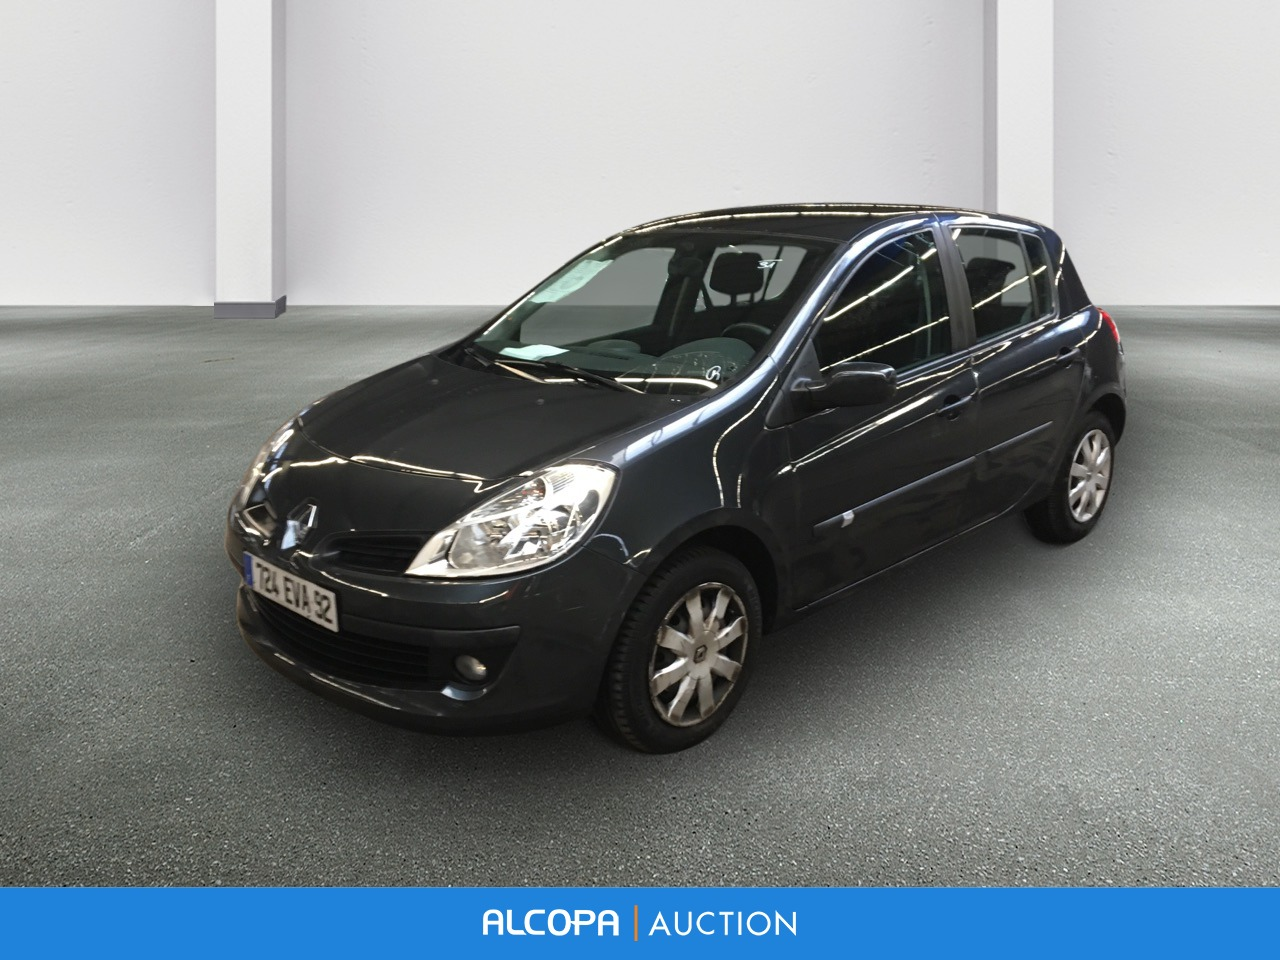 renault clio iii clio 1 4 16v 100 luxe privil ge alcopa auction. Black Bedroom Furniture Sets. Home Design Ideas